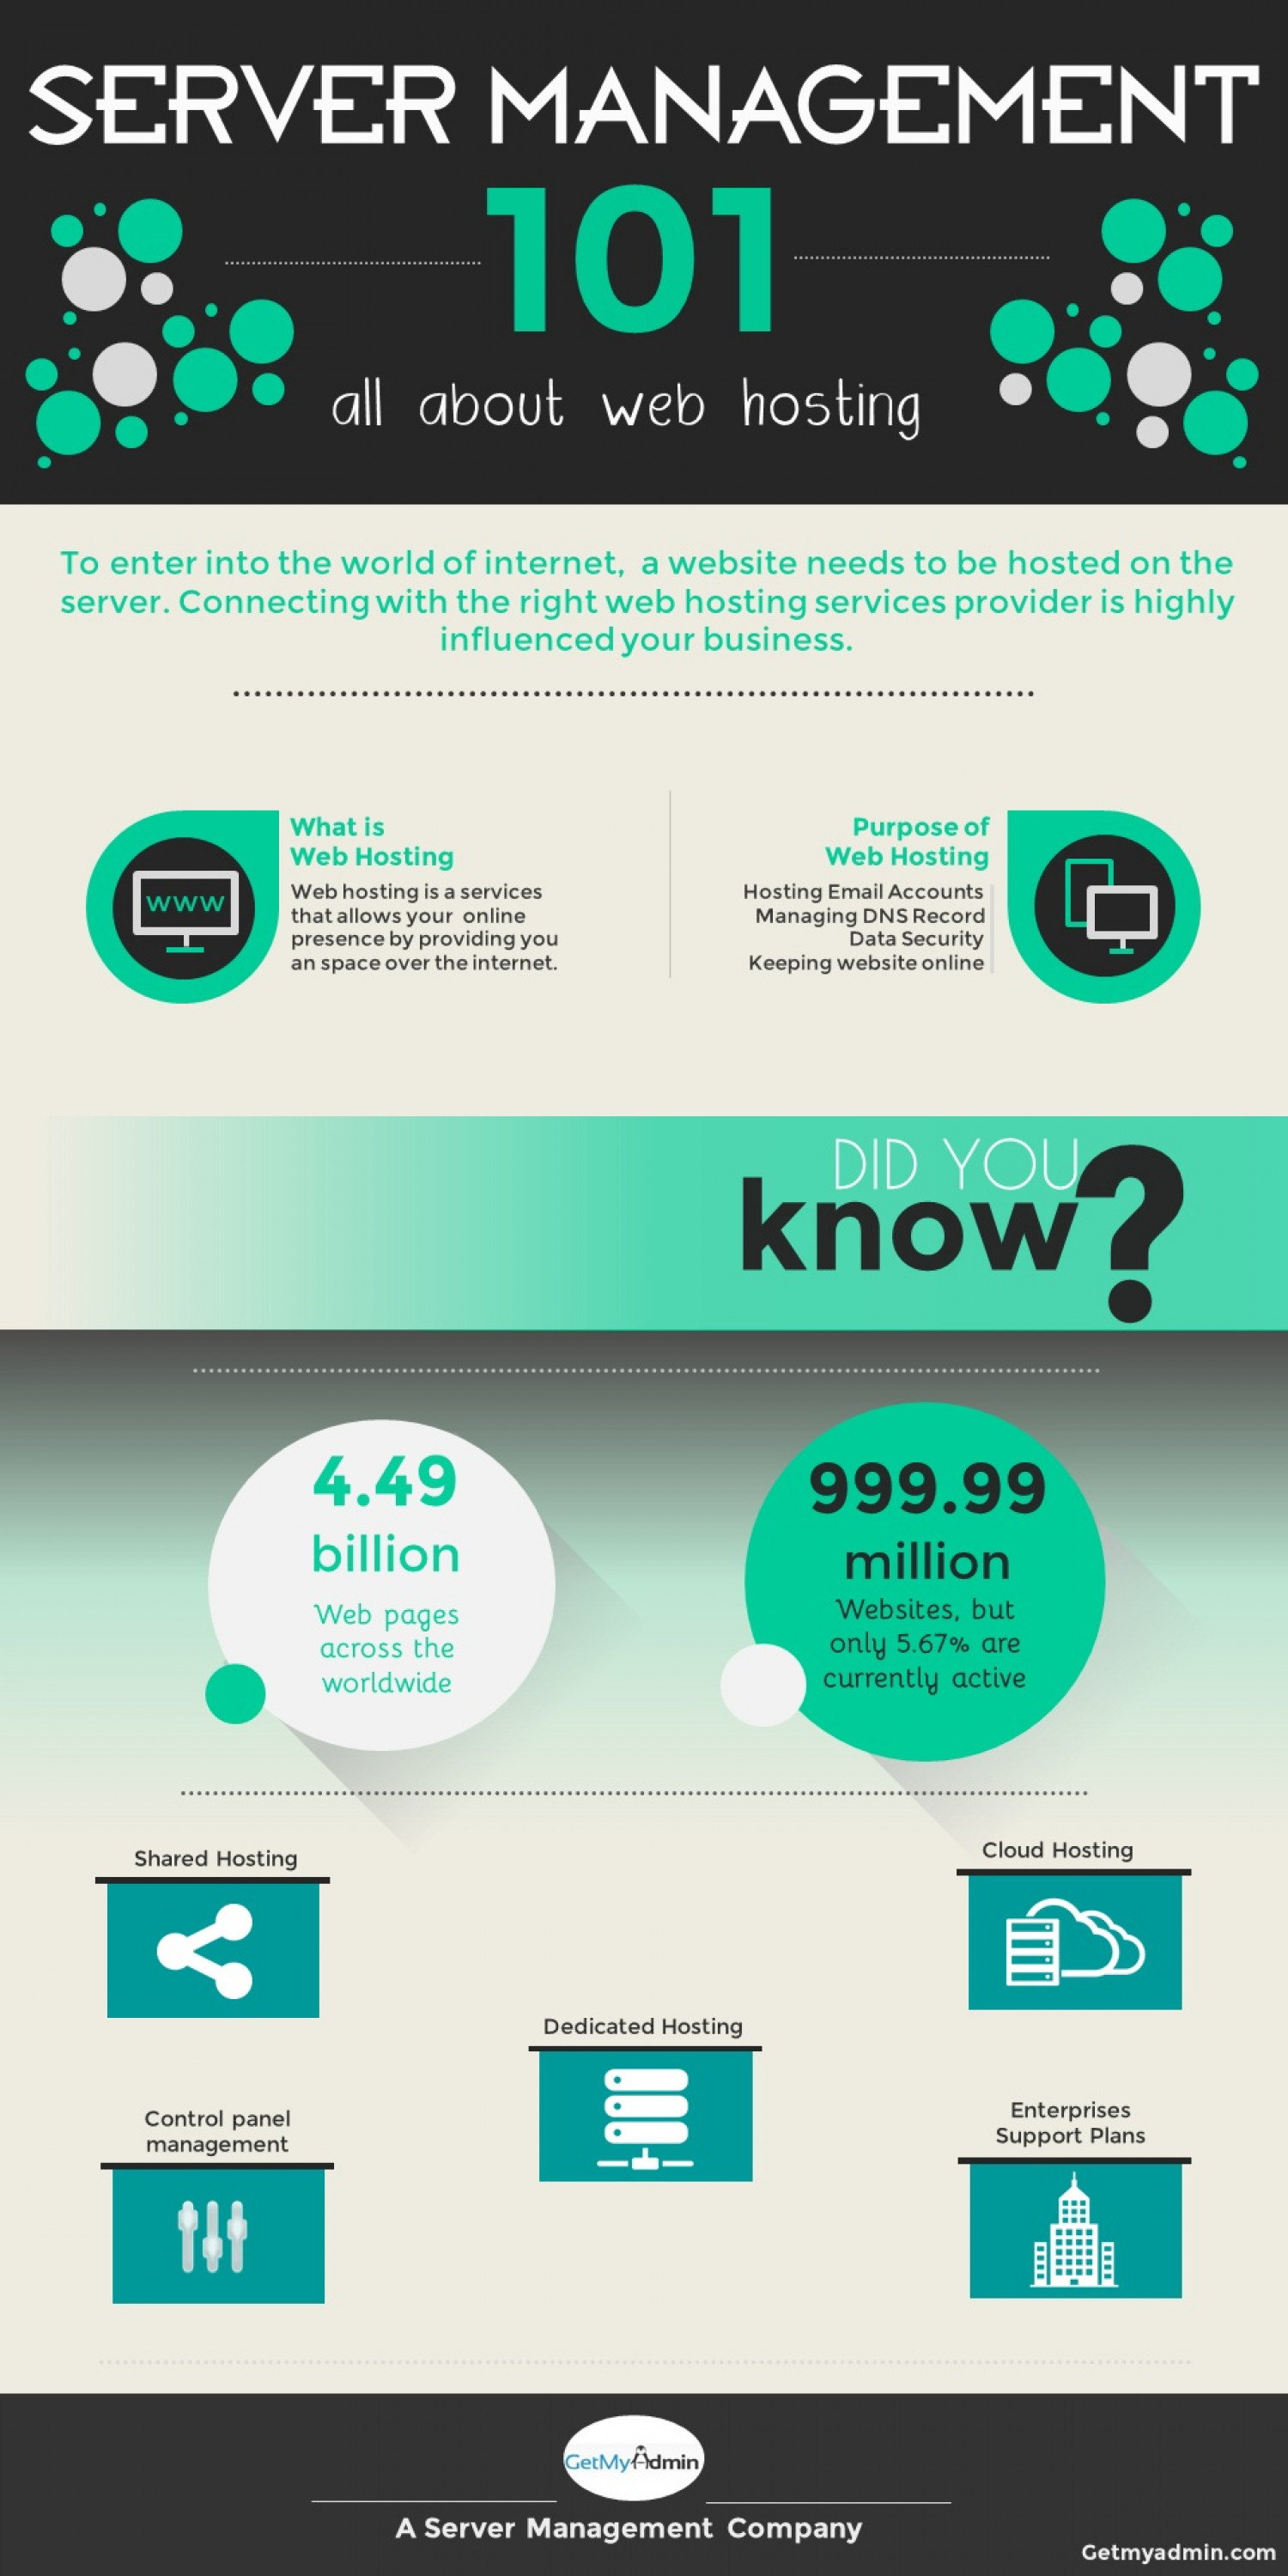 Server Management 101 Infographic